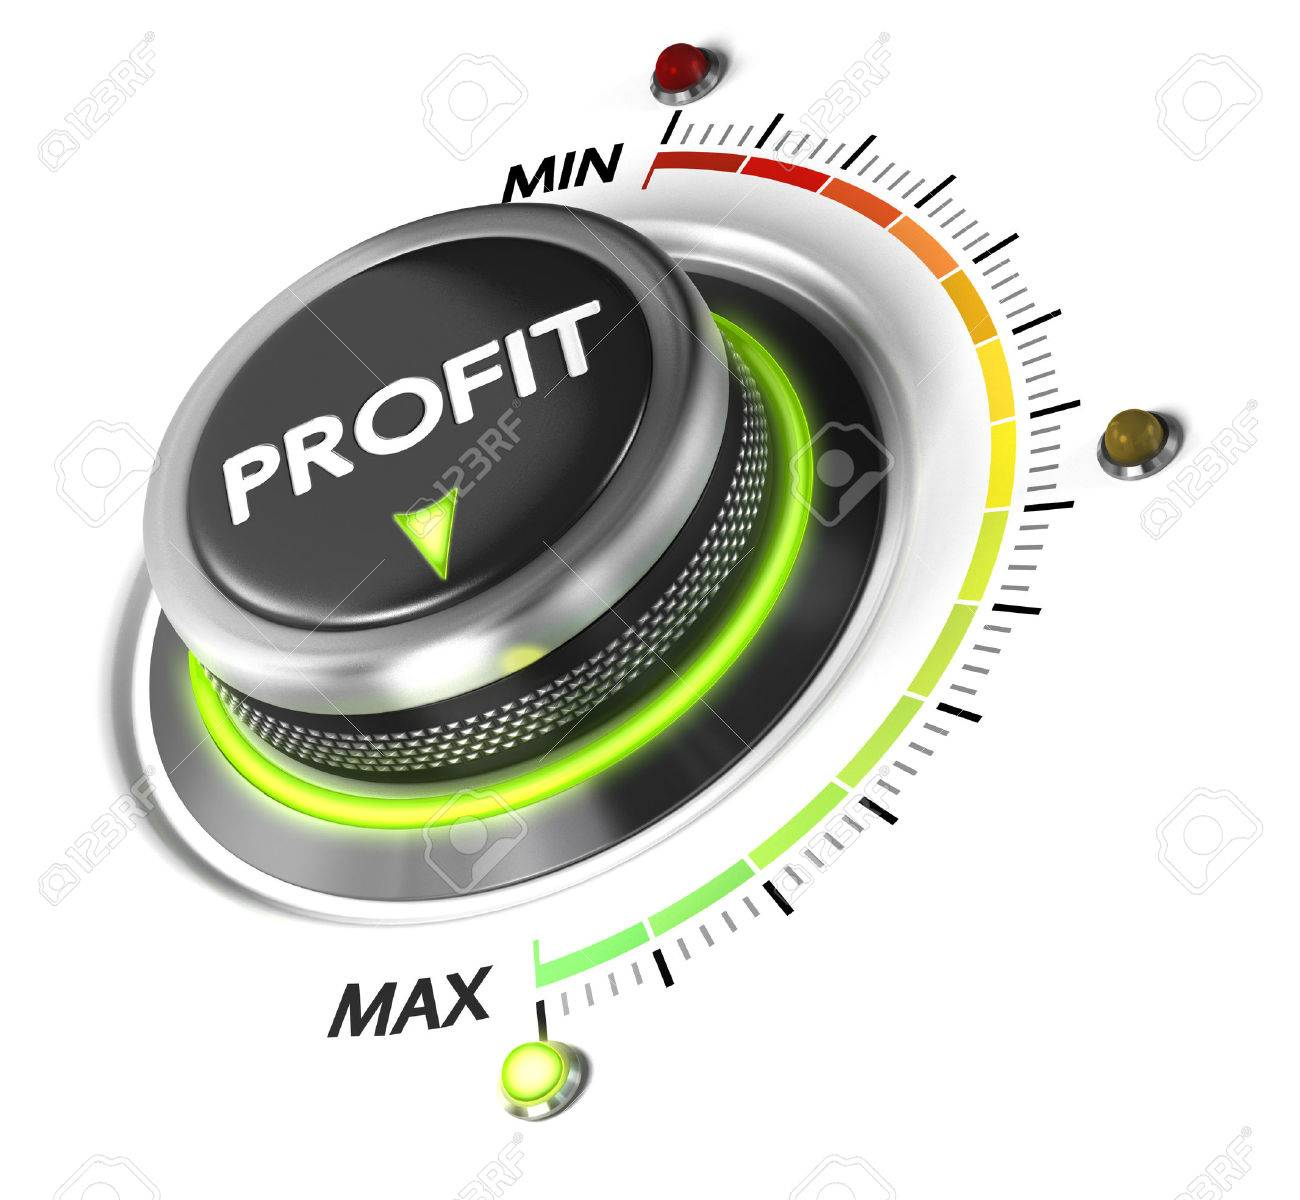 Profit button positioned on maximum, white background and green light. Finance concept illustration of profitability. Stock Illustration - 45250826